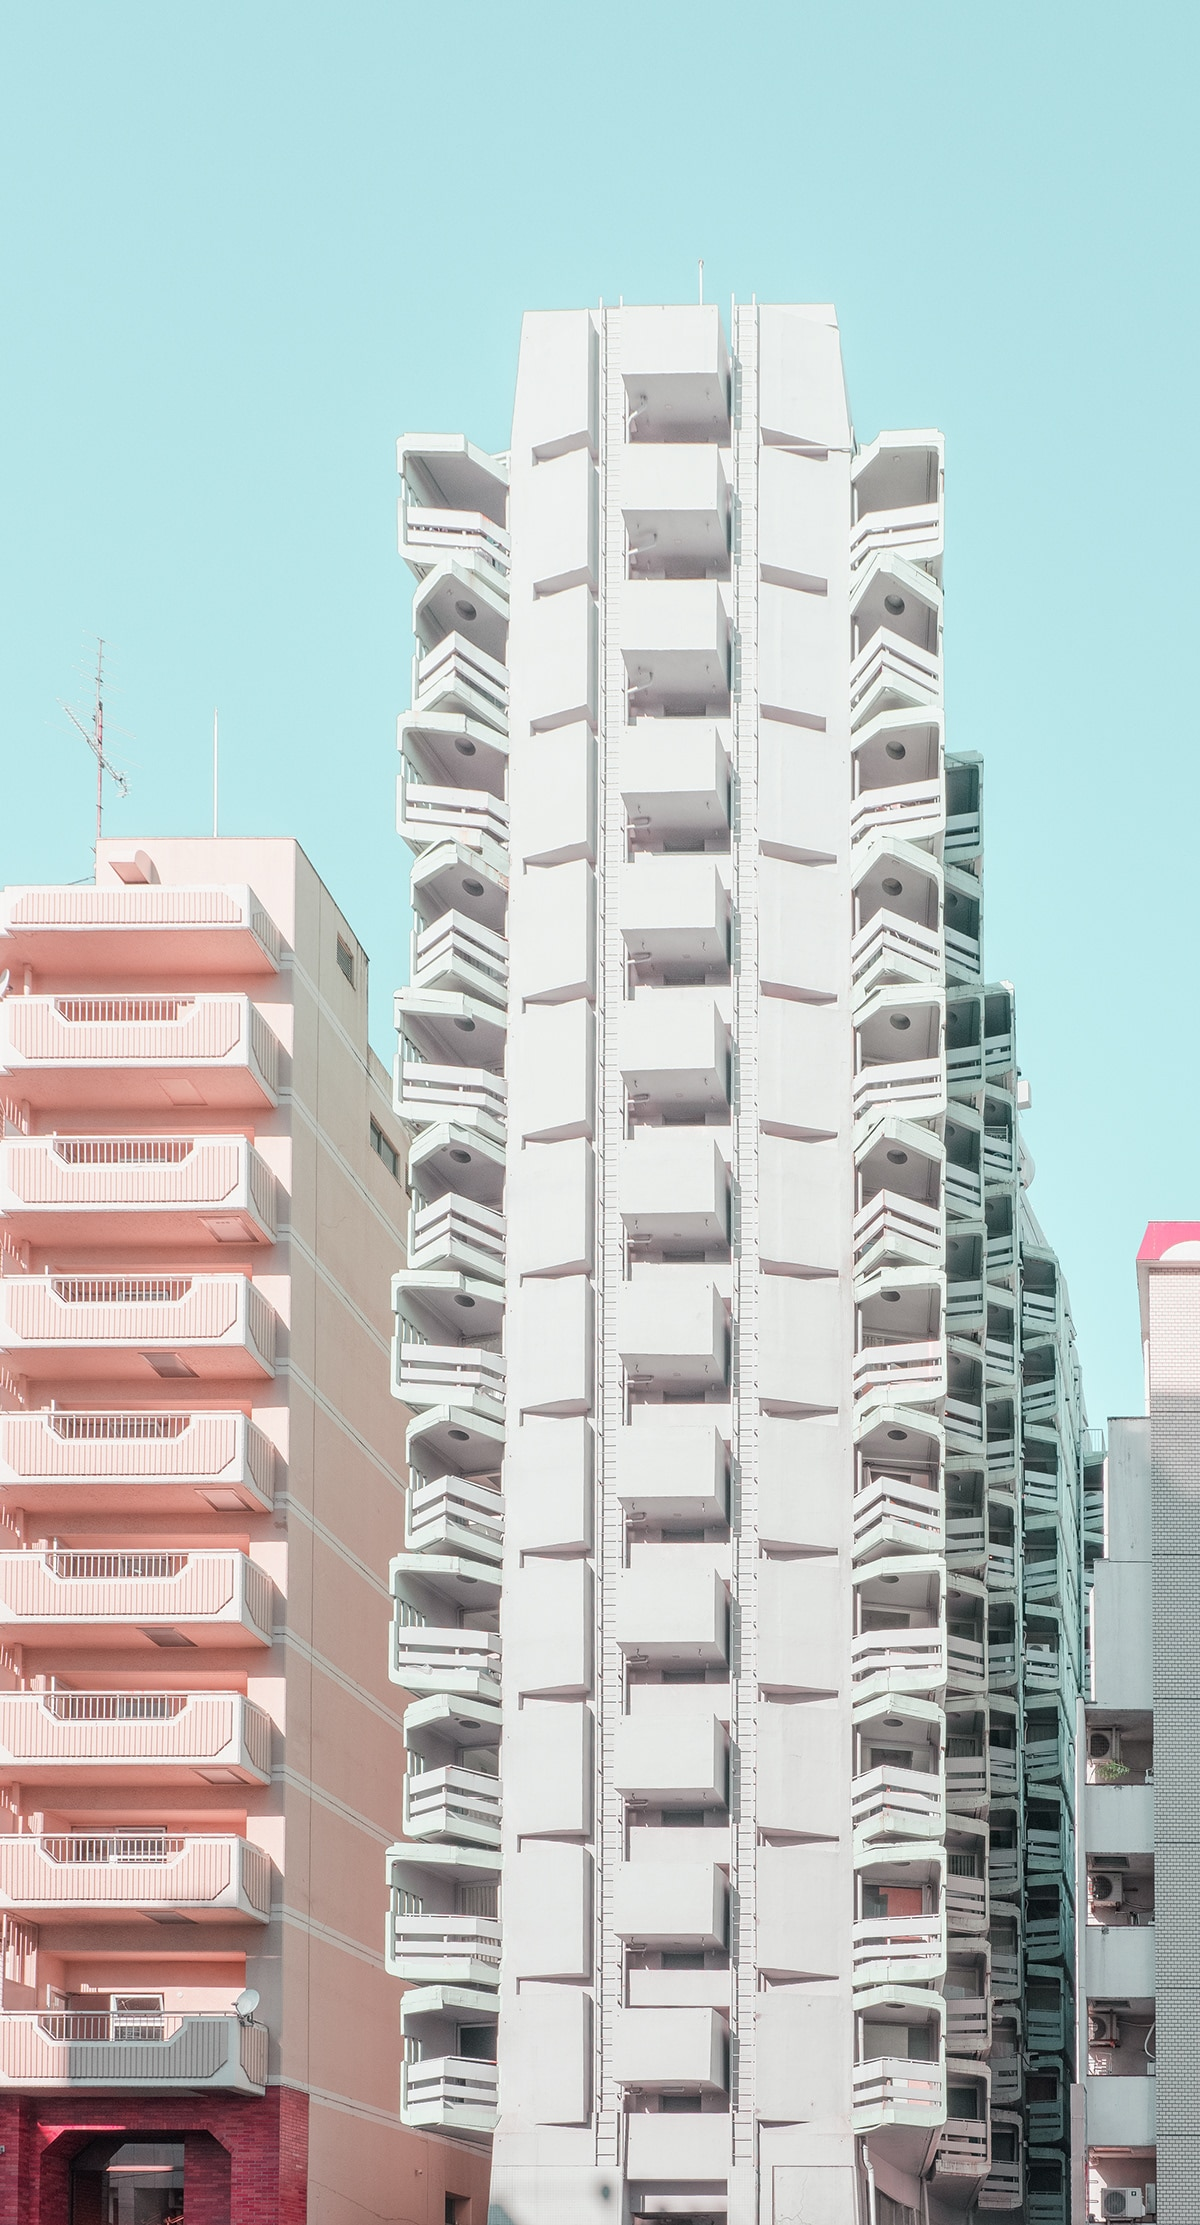 Tall Apartment Building in Tokyo